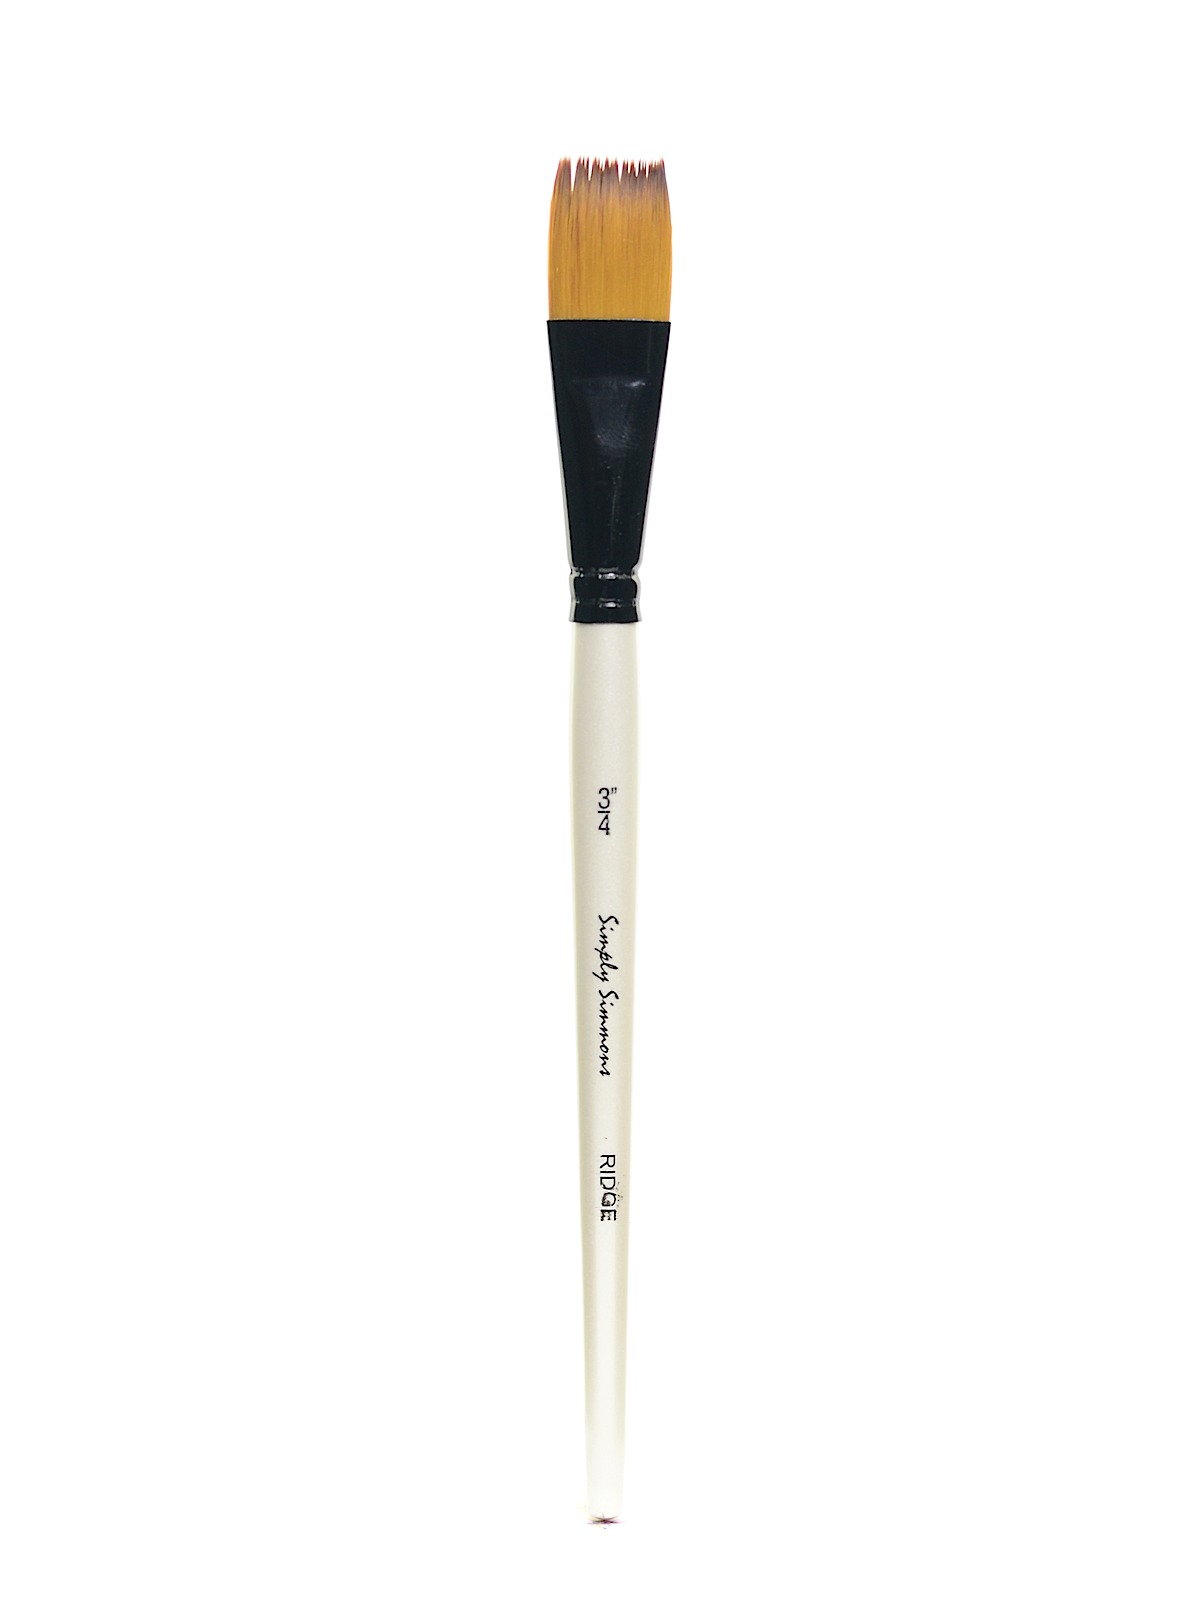 Simply_Simmons_Short_Handle_Brushes_ridge_3_4_in